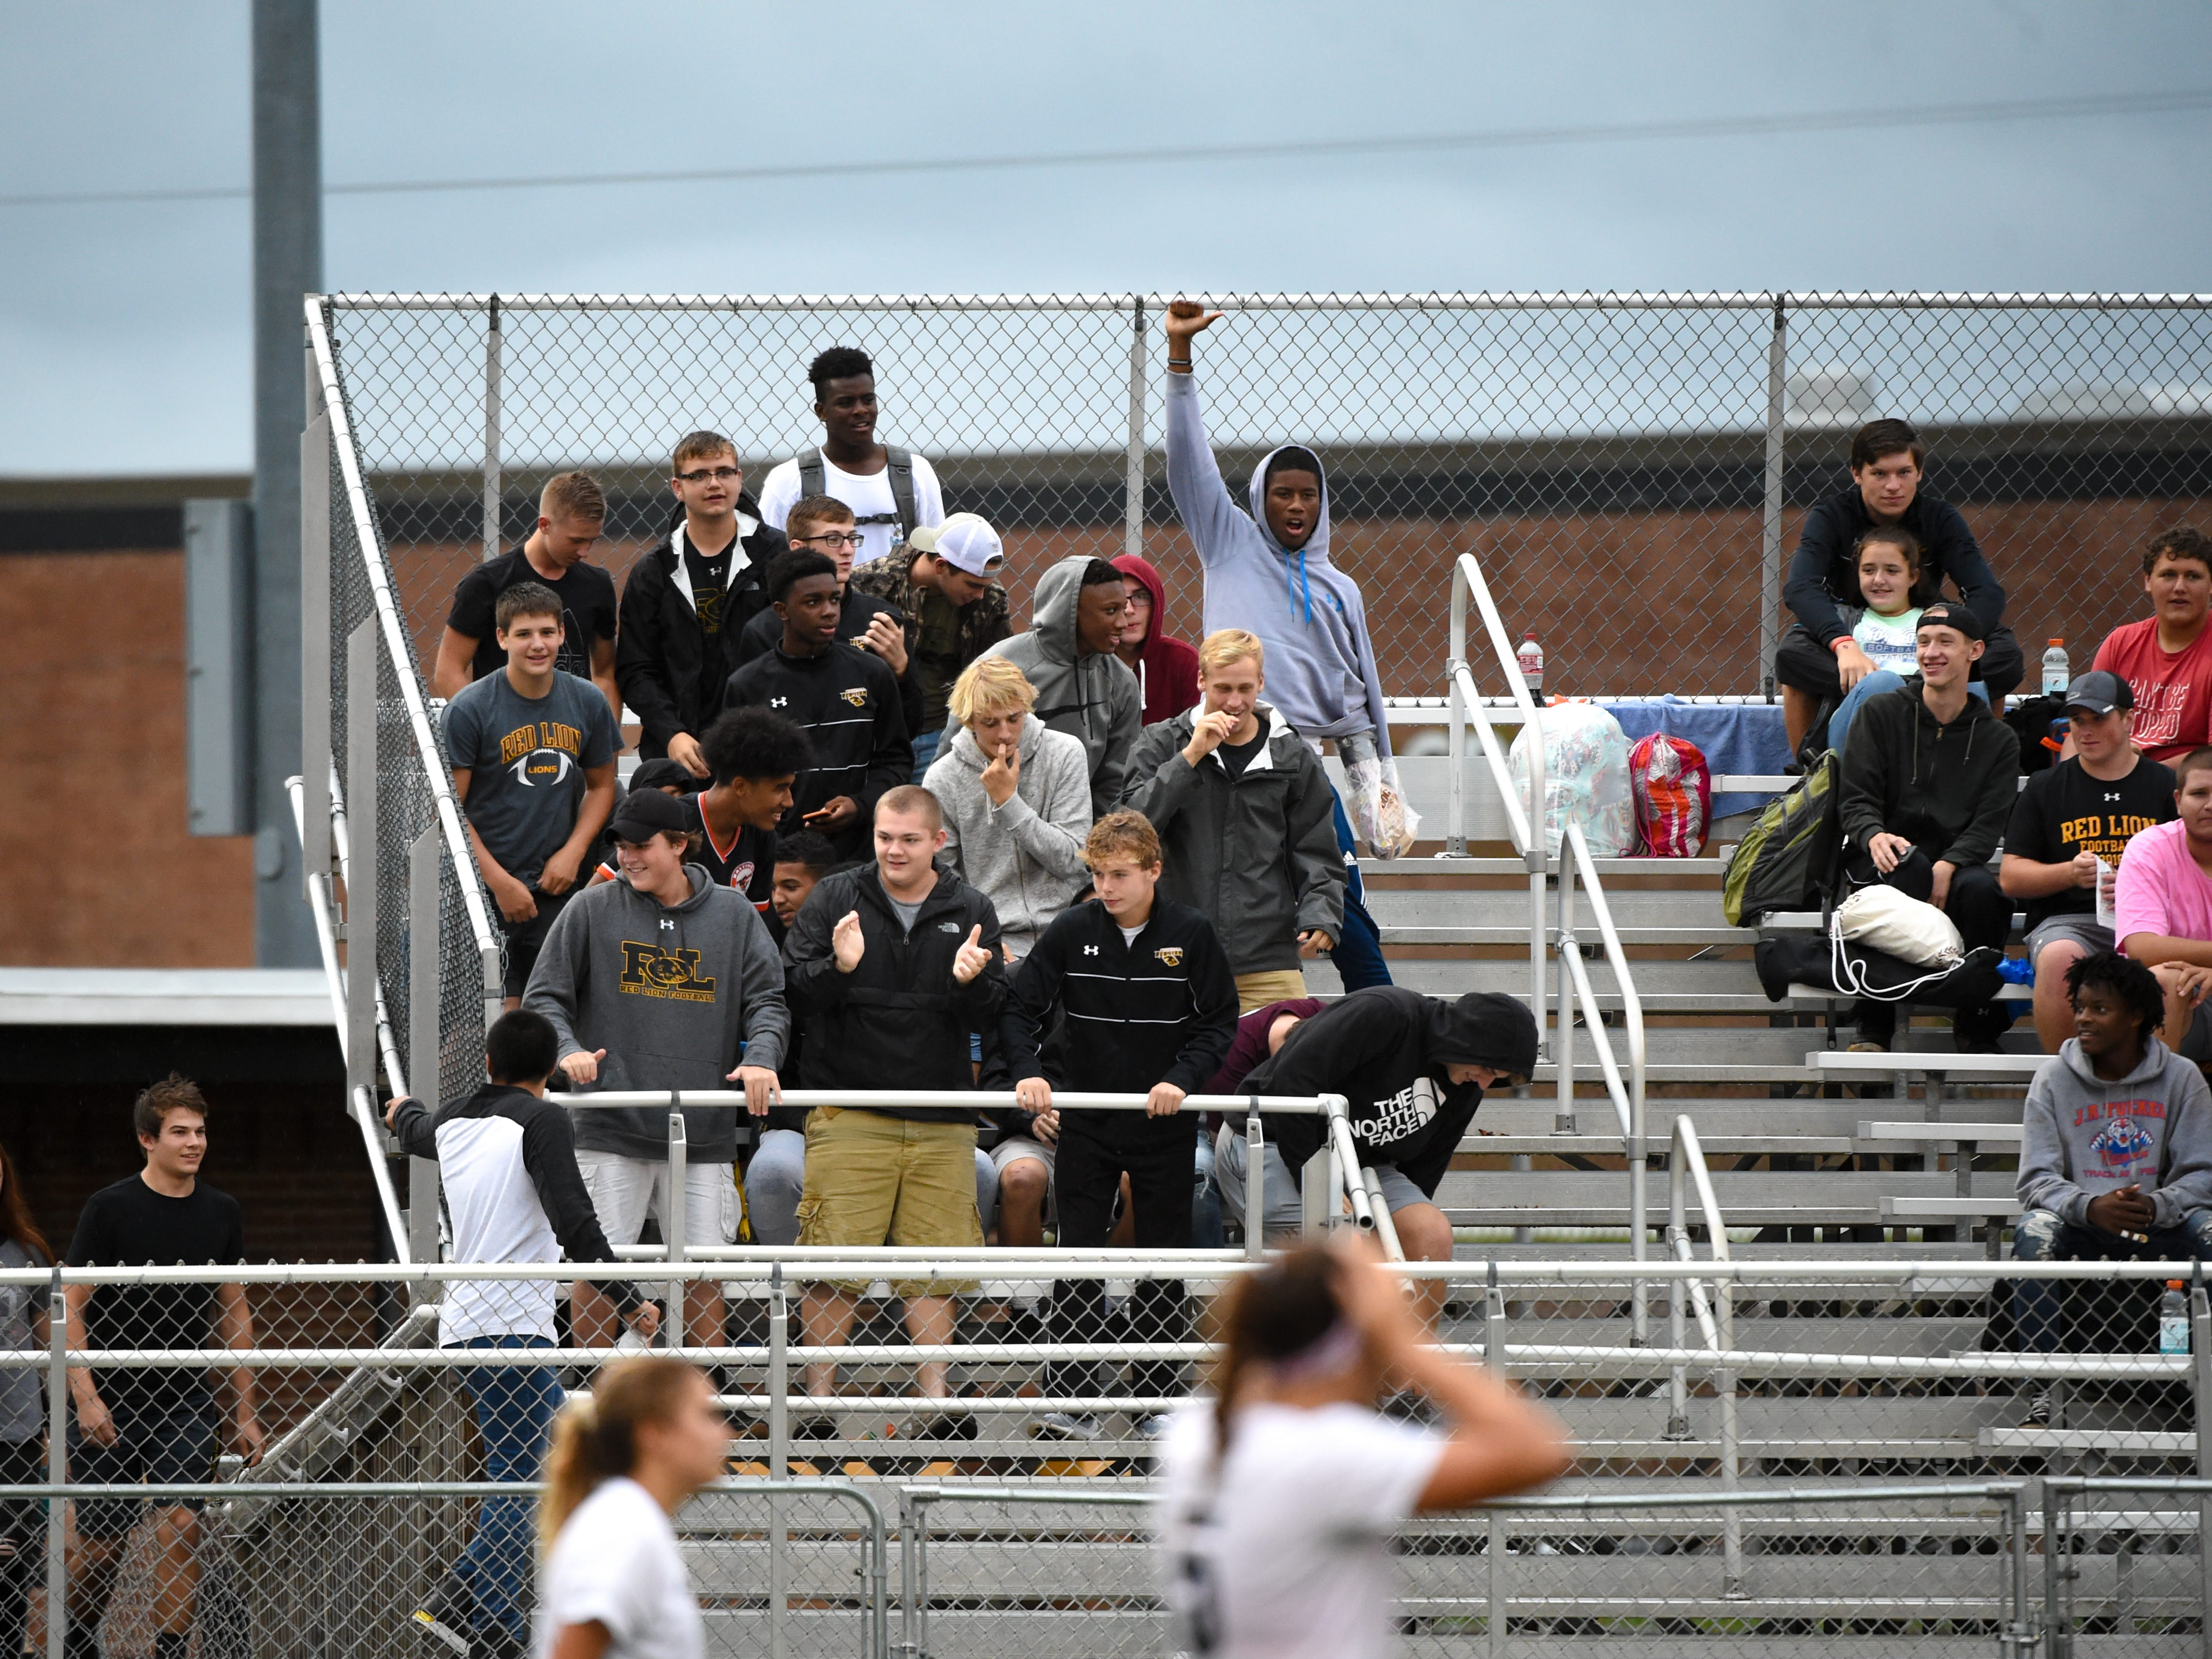 The Red Lion boys soccer team cheer on the girls during the girls soccer game between Red Lion and Dallastown, October 11, 2018. The Lady Lions beat the Wildcats 4-0.